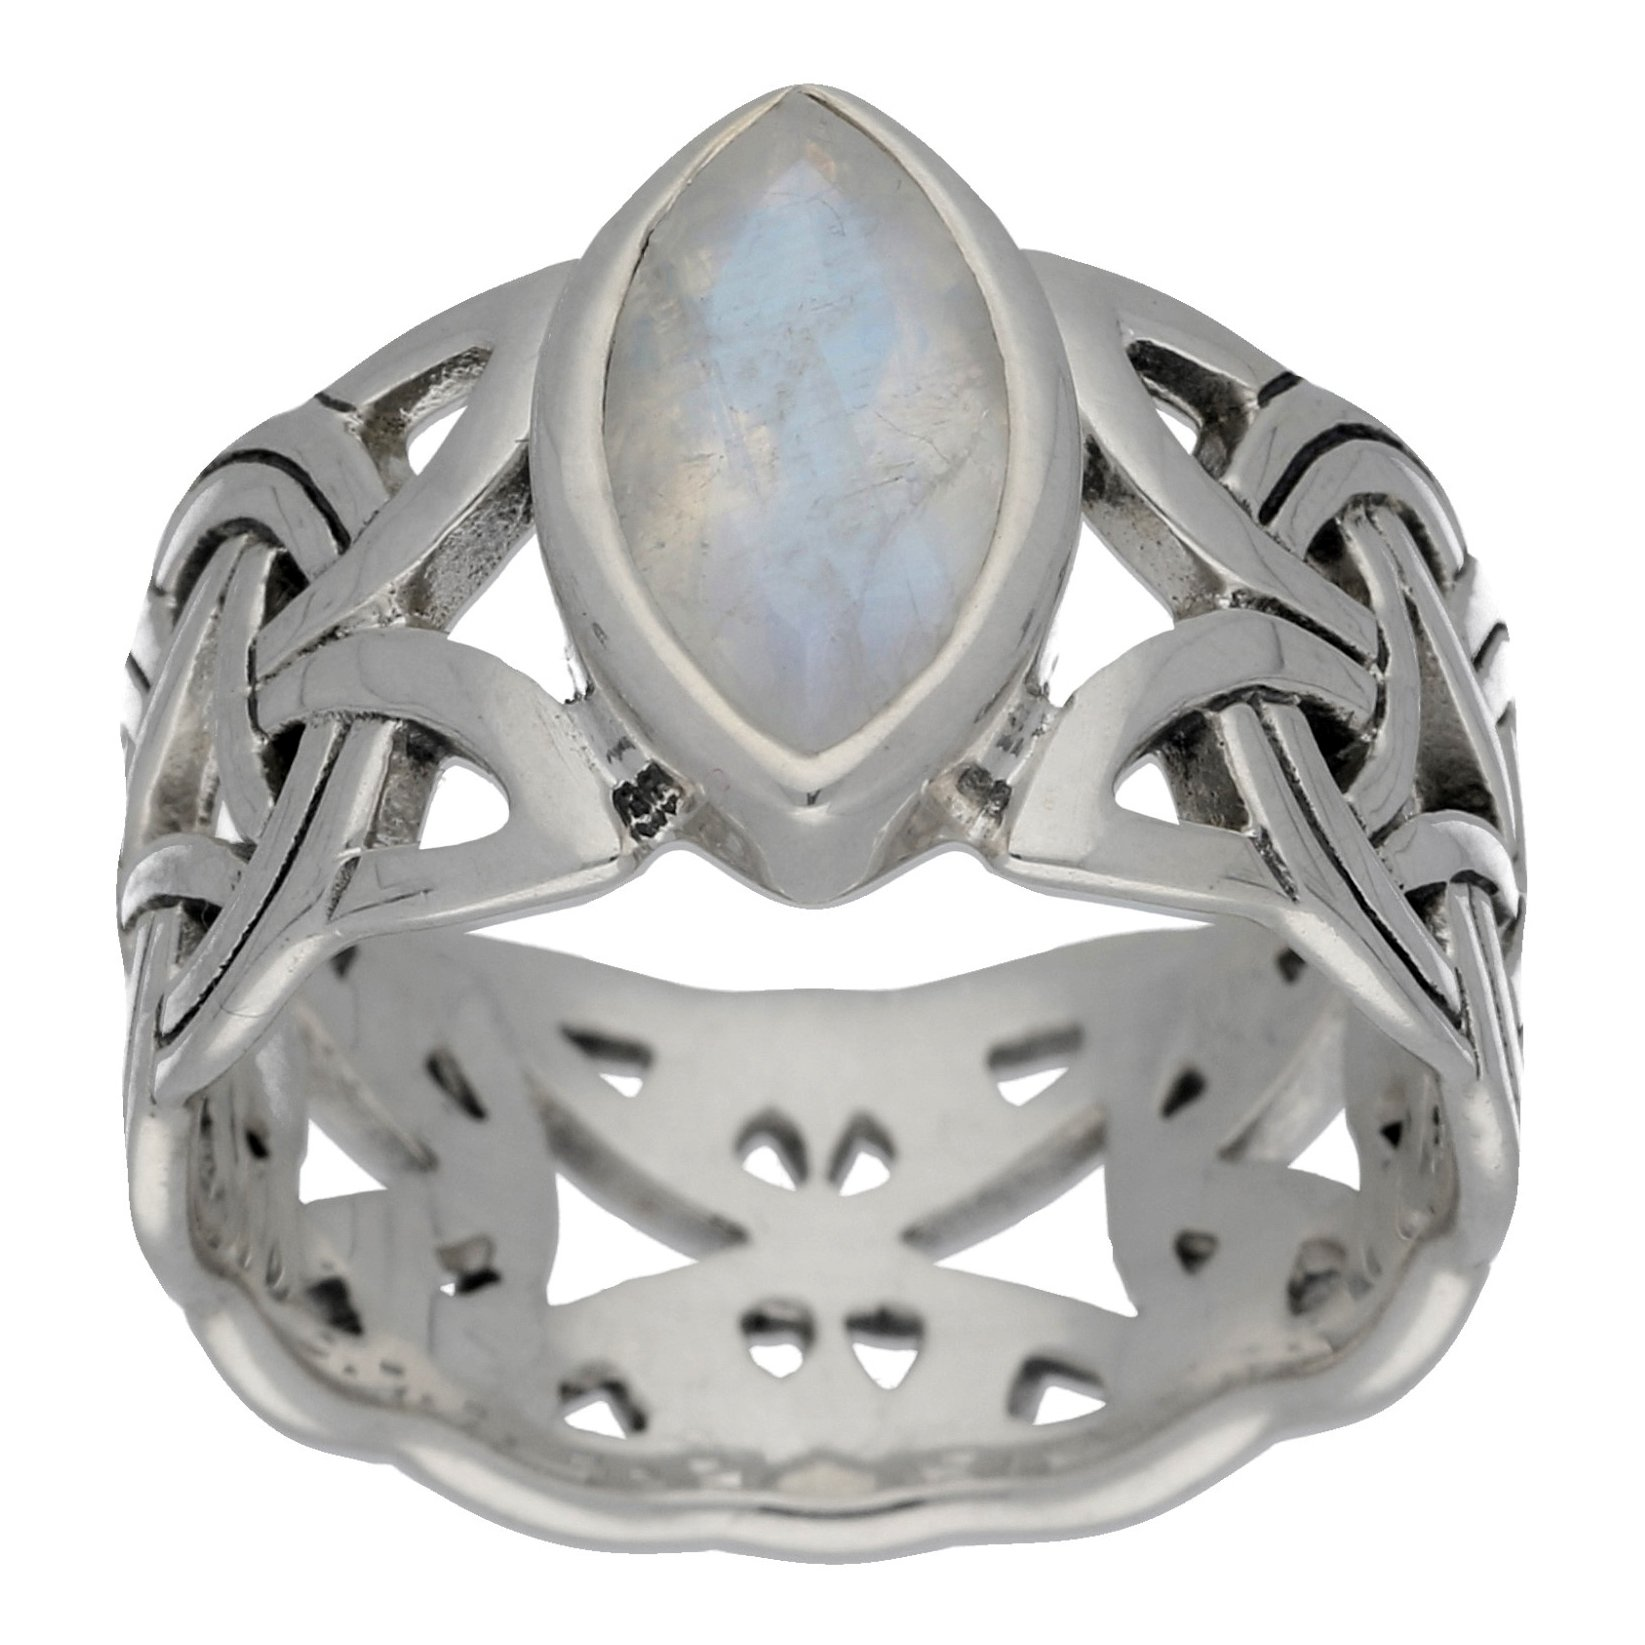 Borre Knot Rainbow Moonstone Ellipse Viking Braided Wedding Band Norse Celtic Sterling Silver Ring Size 6(Sizes 4,5,6,7,8,9,10,11,12,13,14,15)